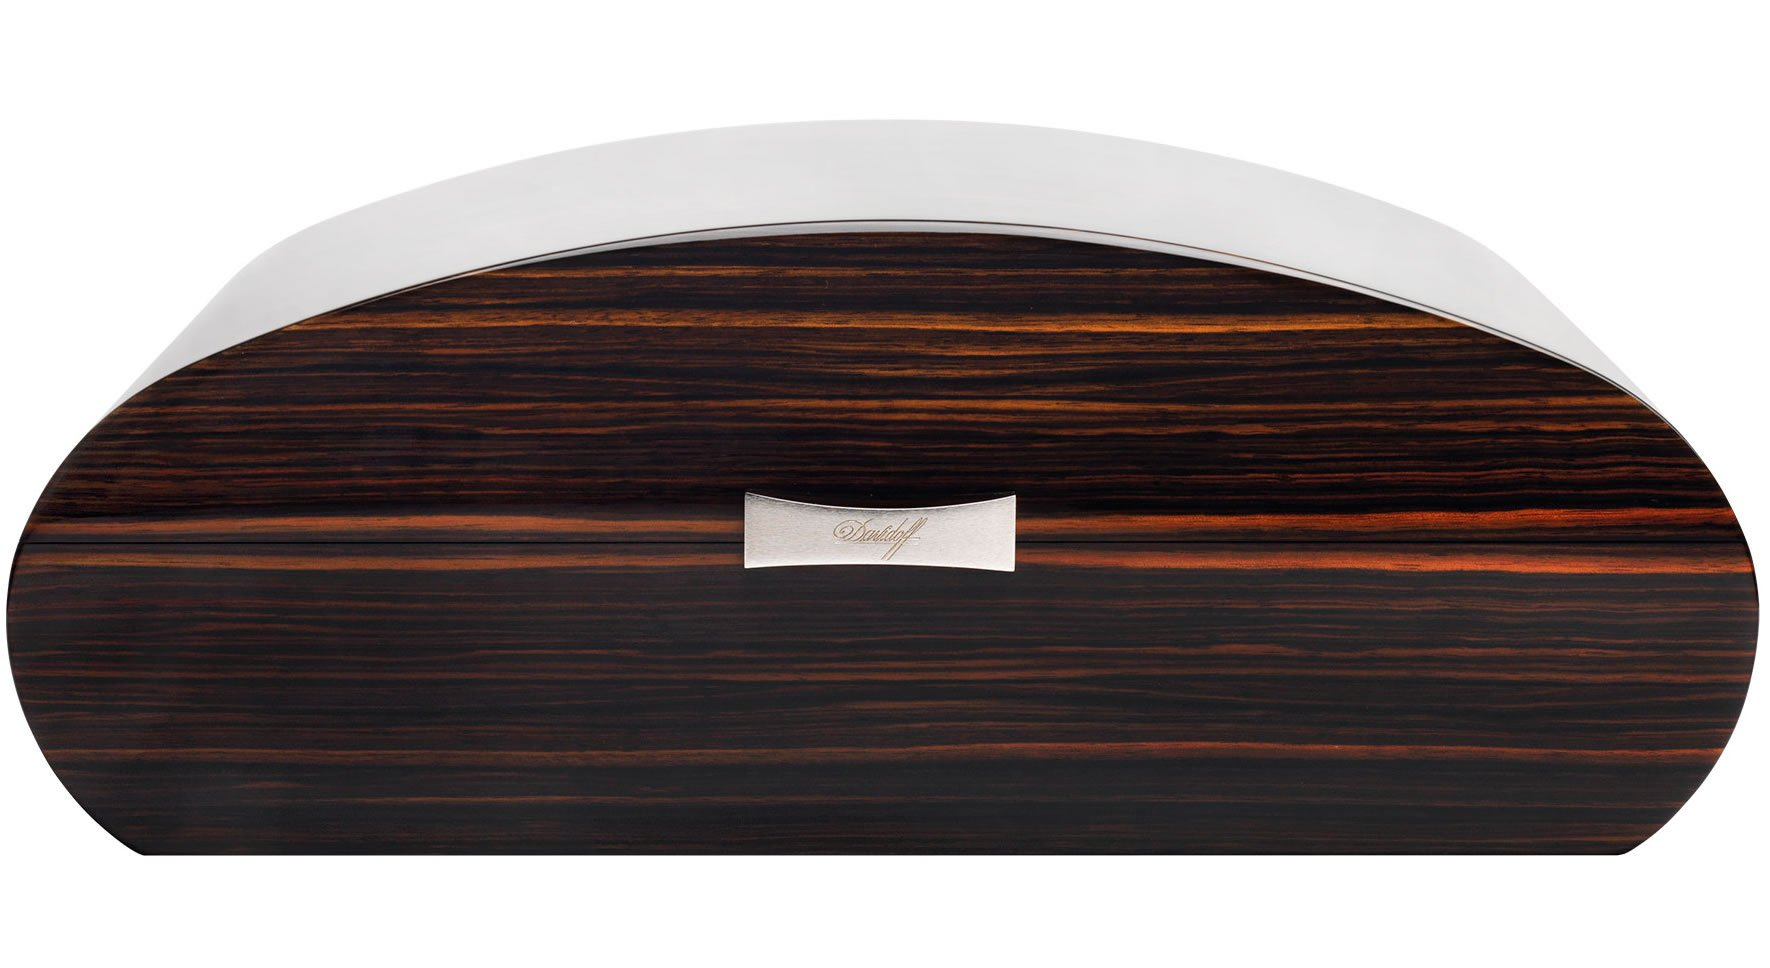 Davidoff S Dome Humidor Preserves Your Cigars In Style